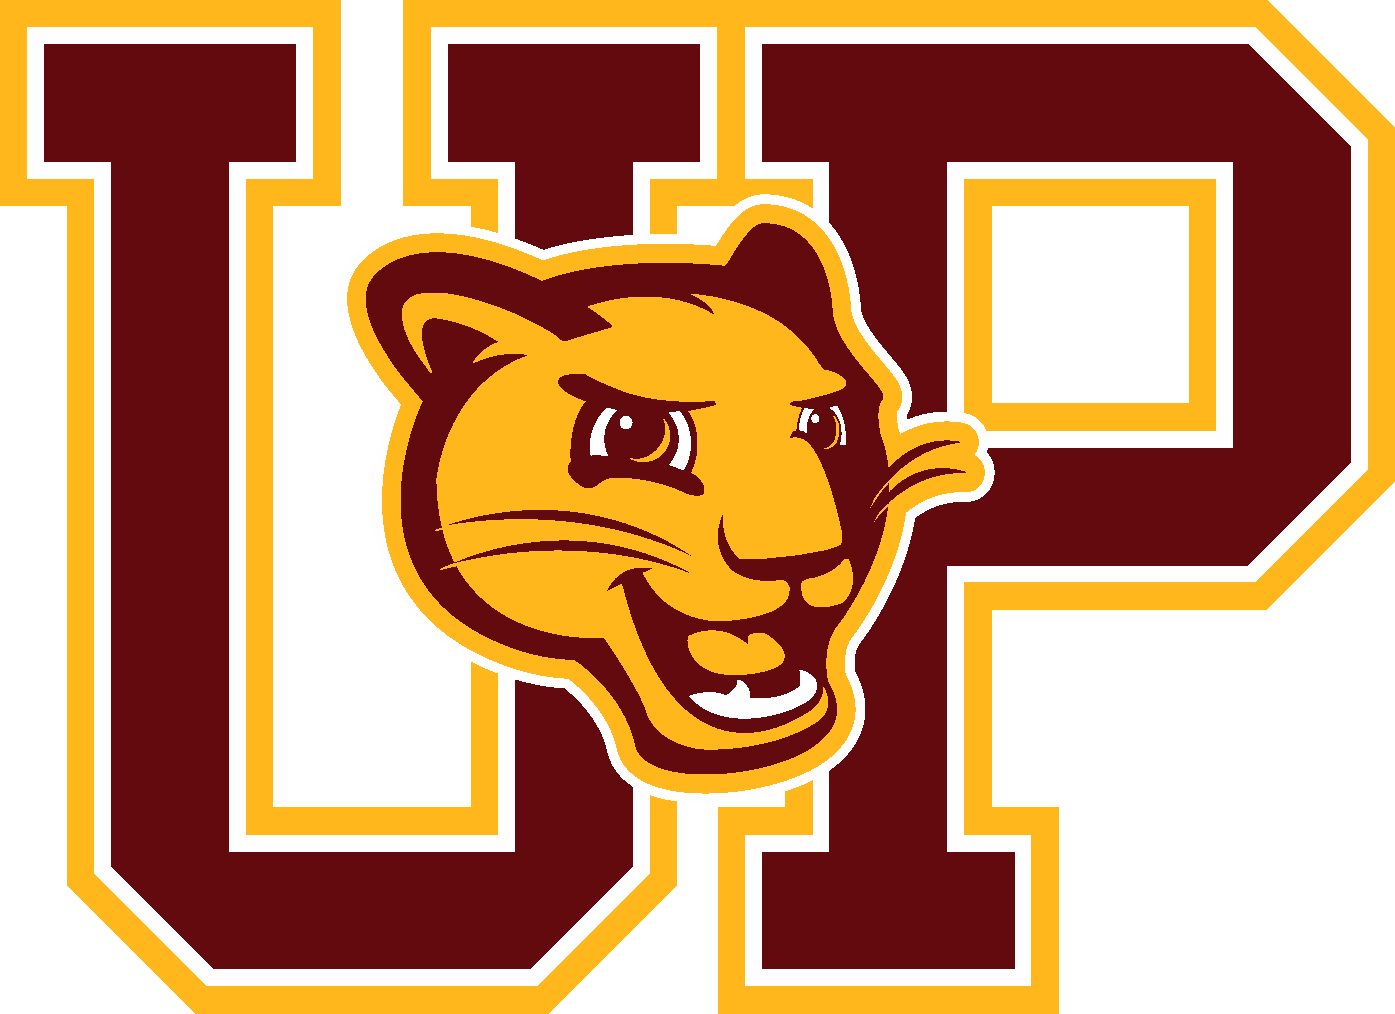 UP letter and mascot logo